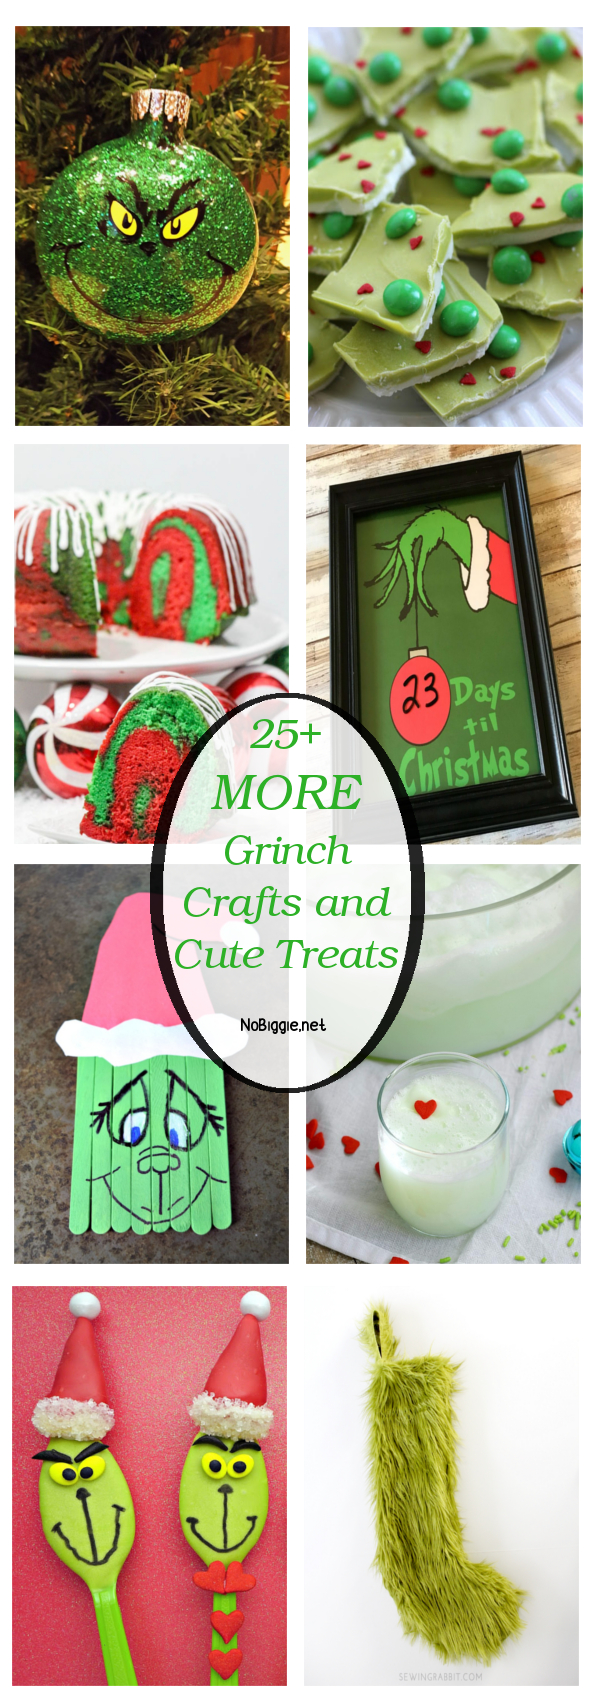 25+ MORE Grinch Crafts and Cute Treats | NoBiggie.net